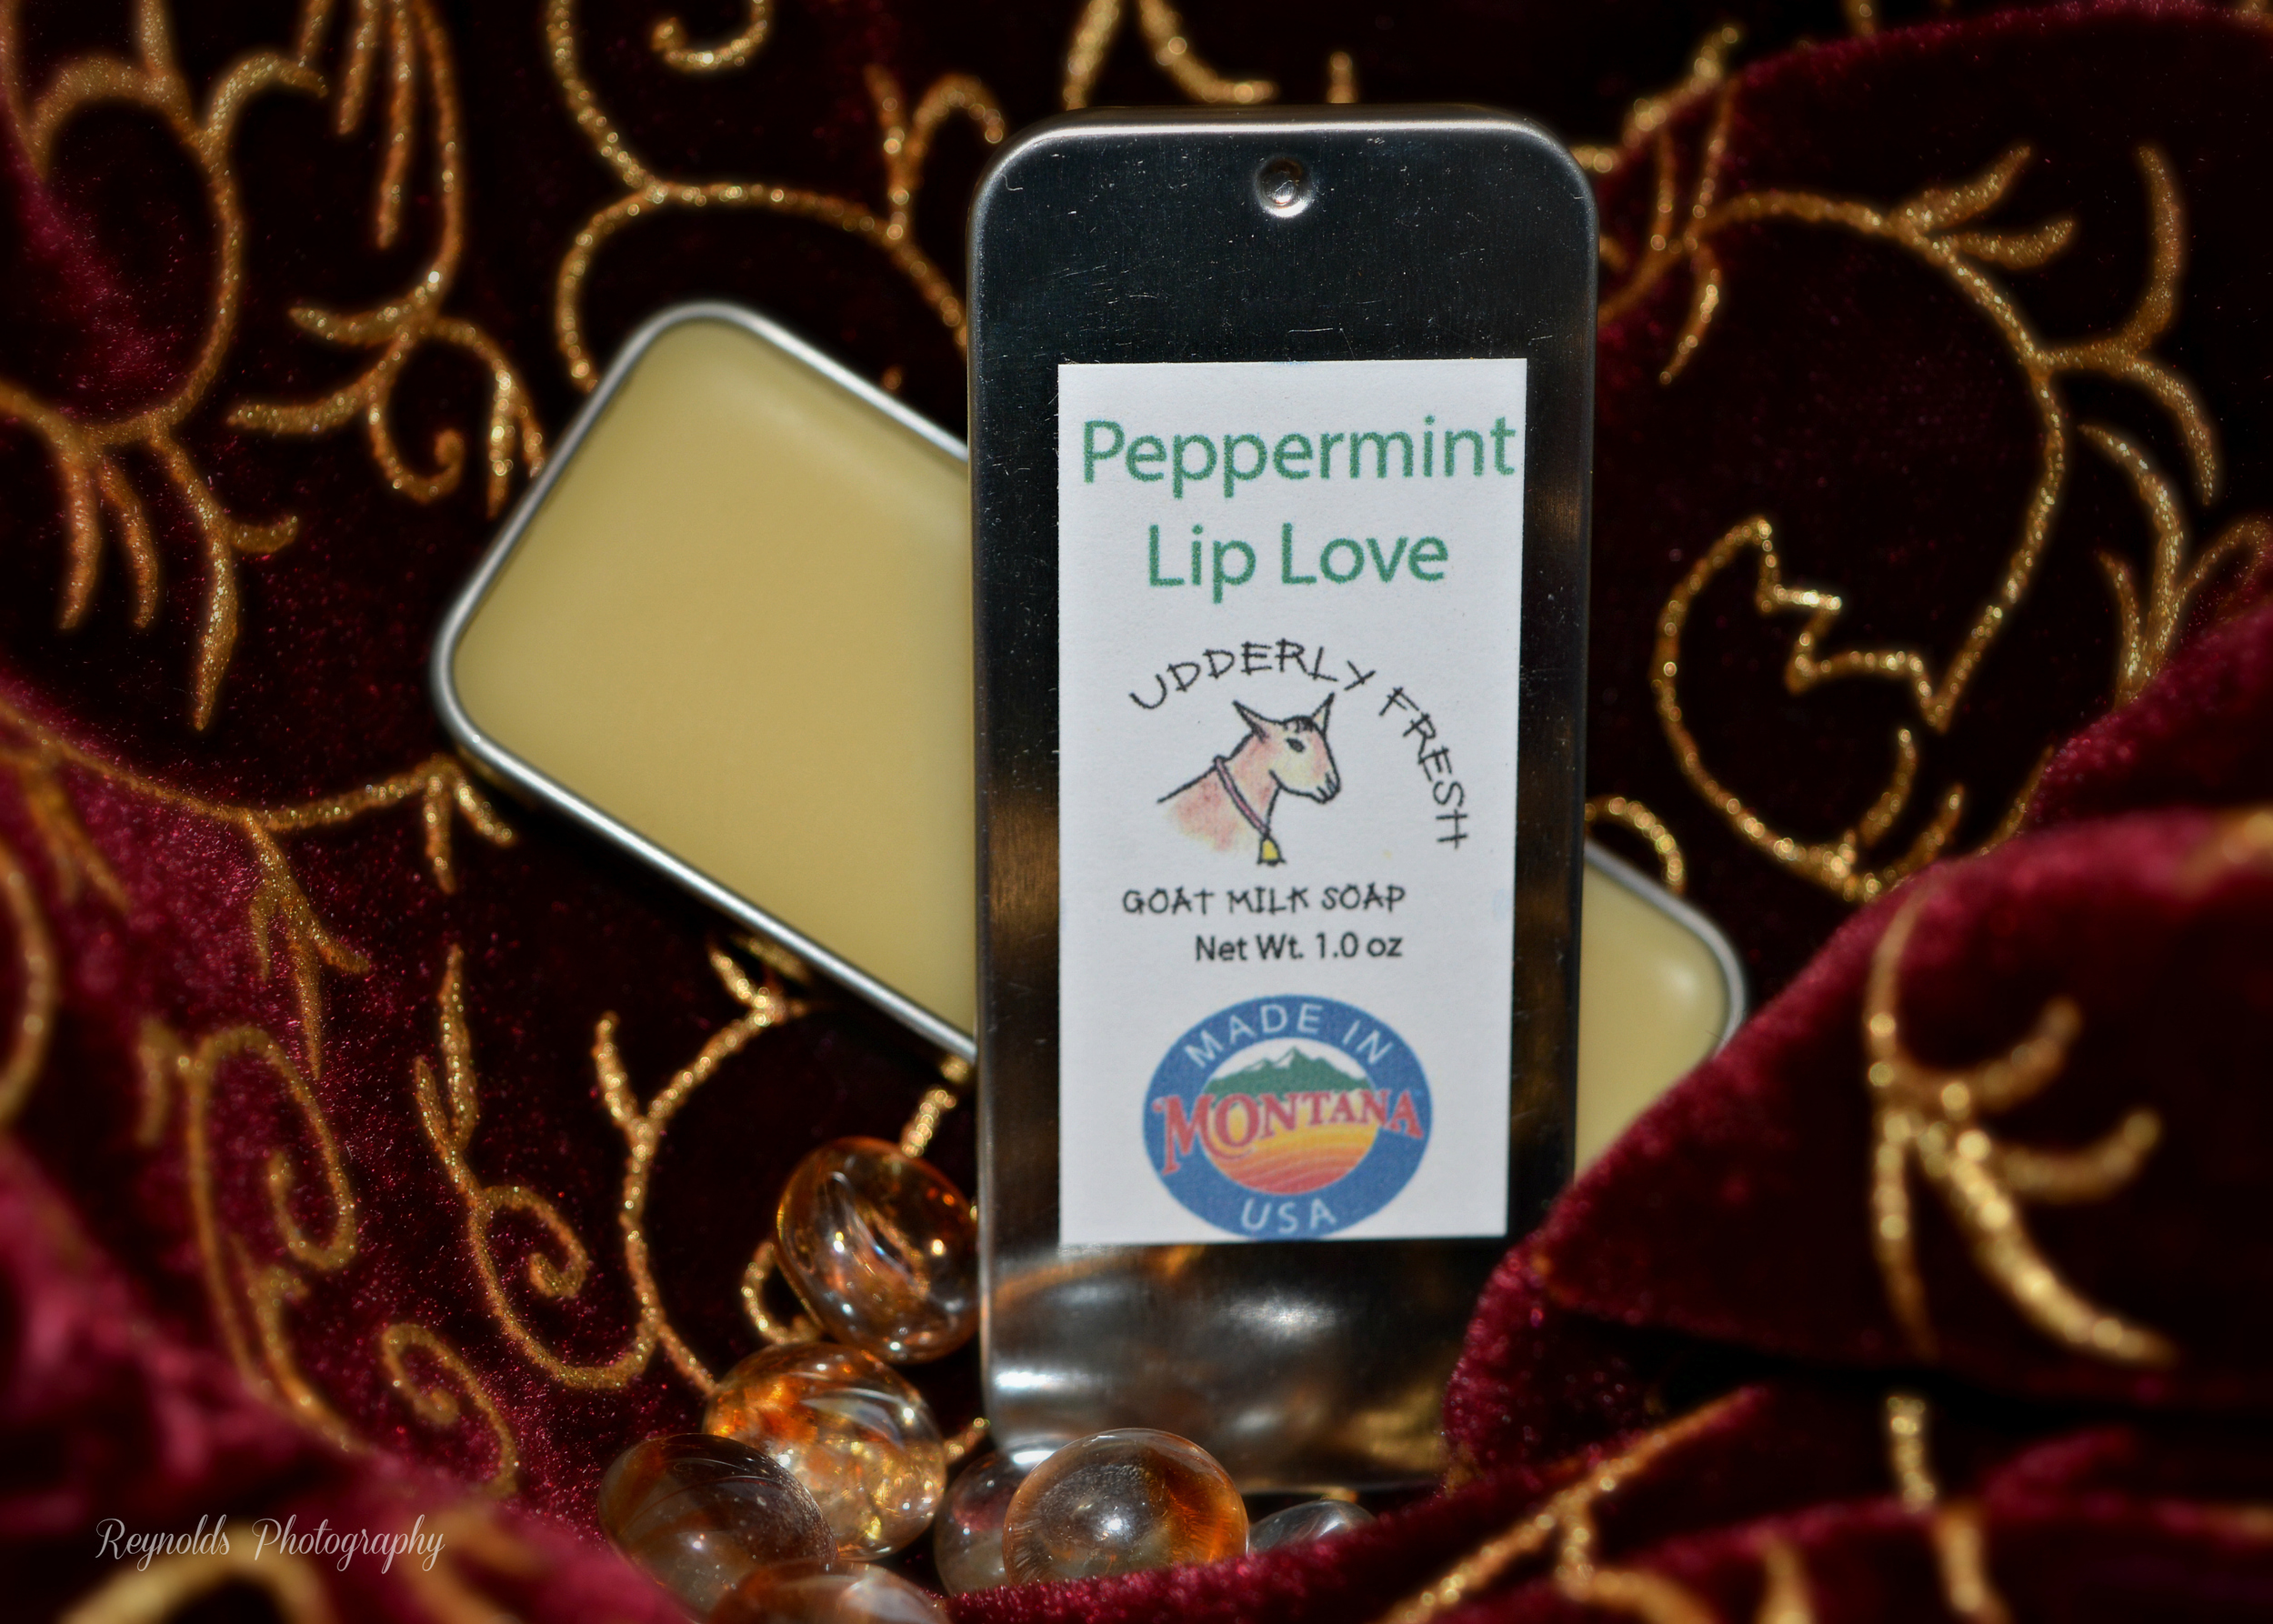 Peppermint Lip Love